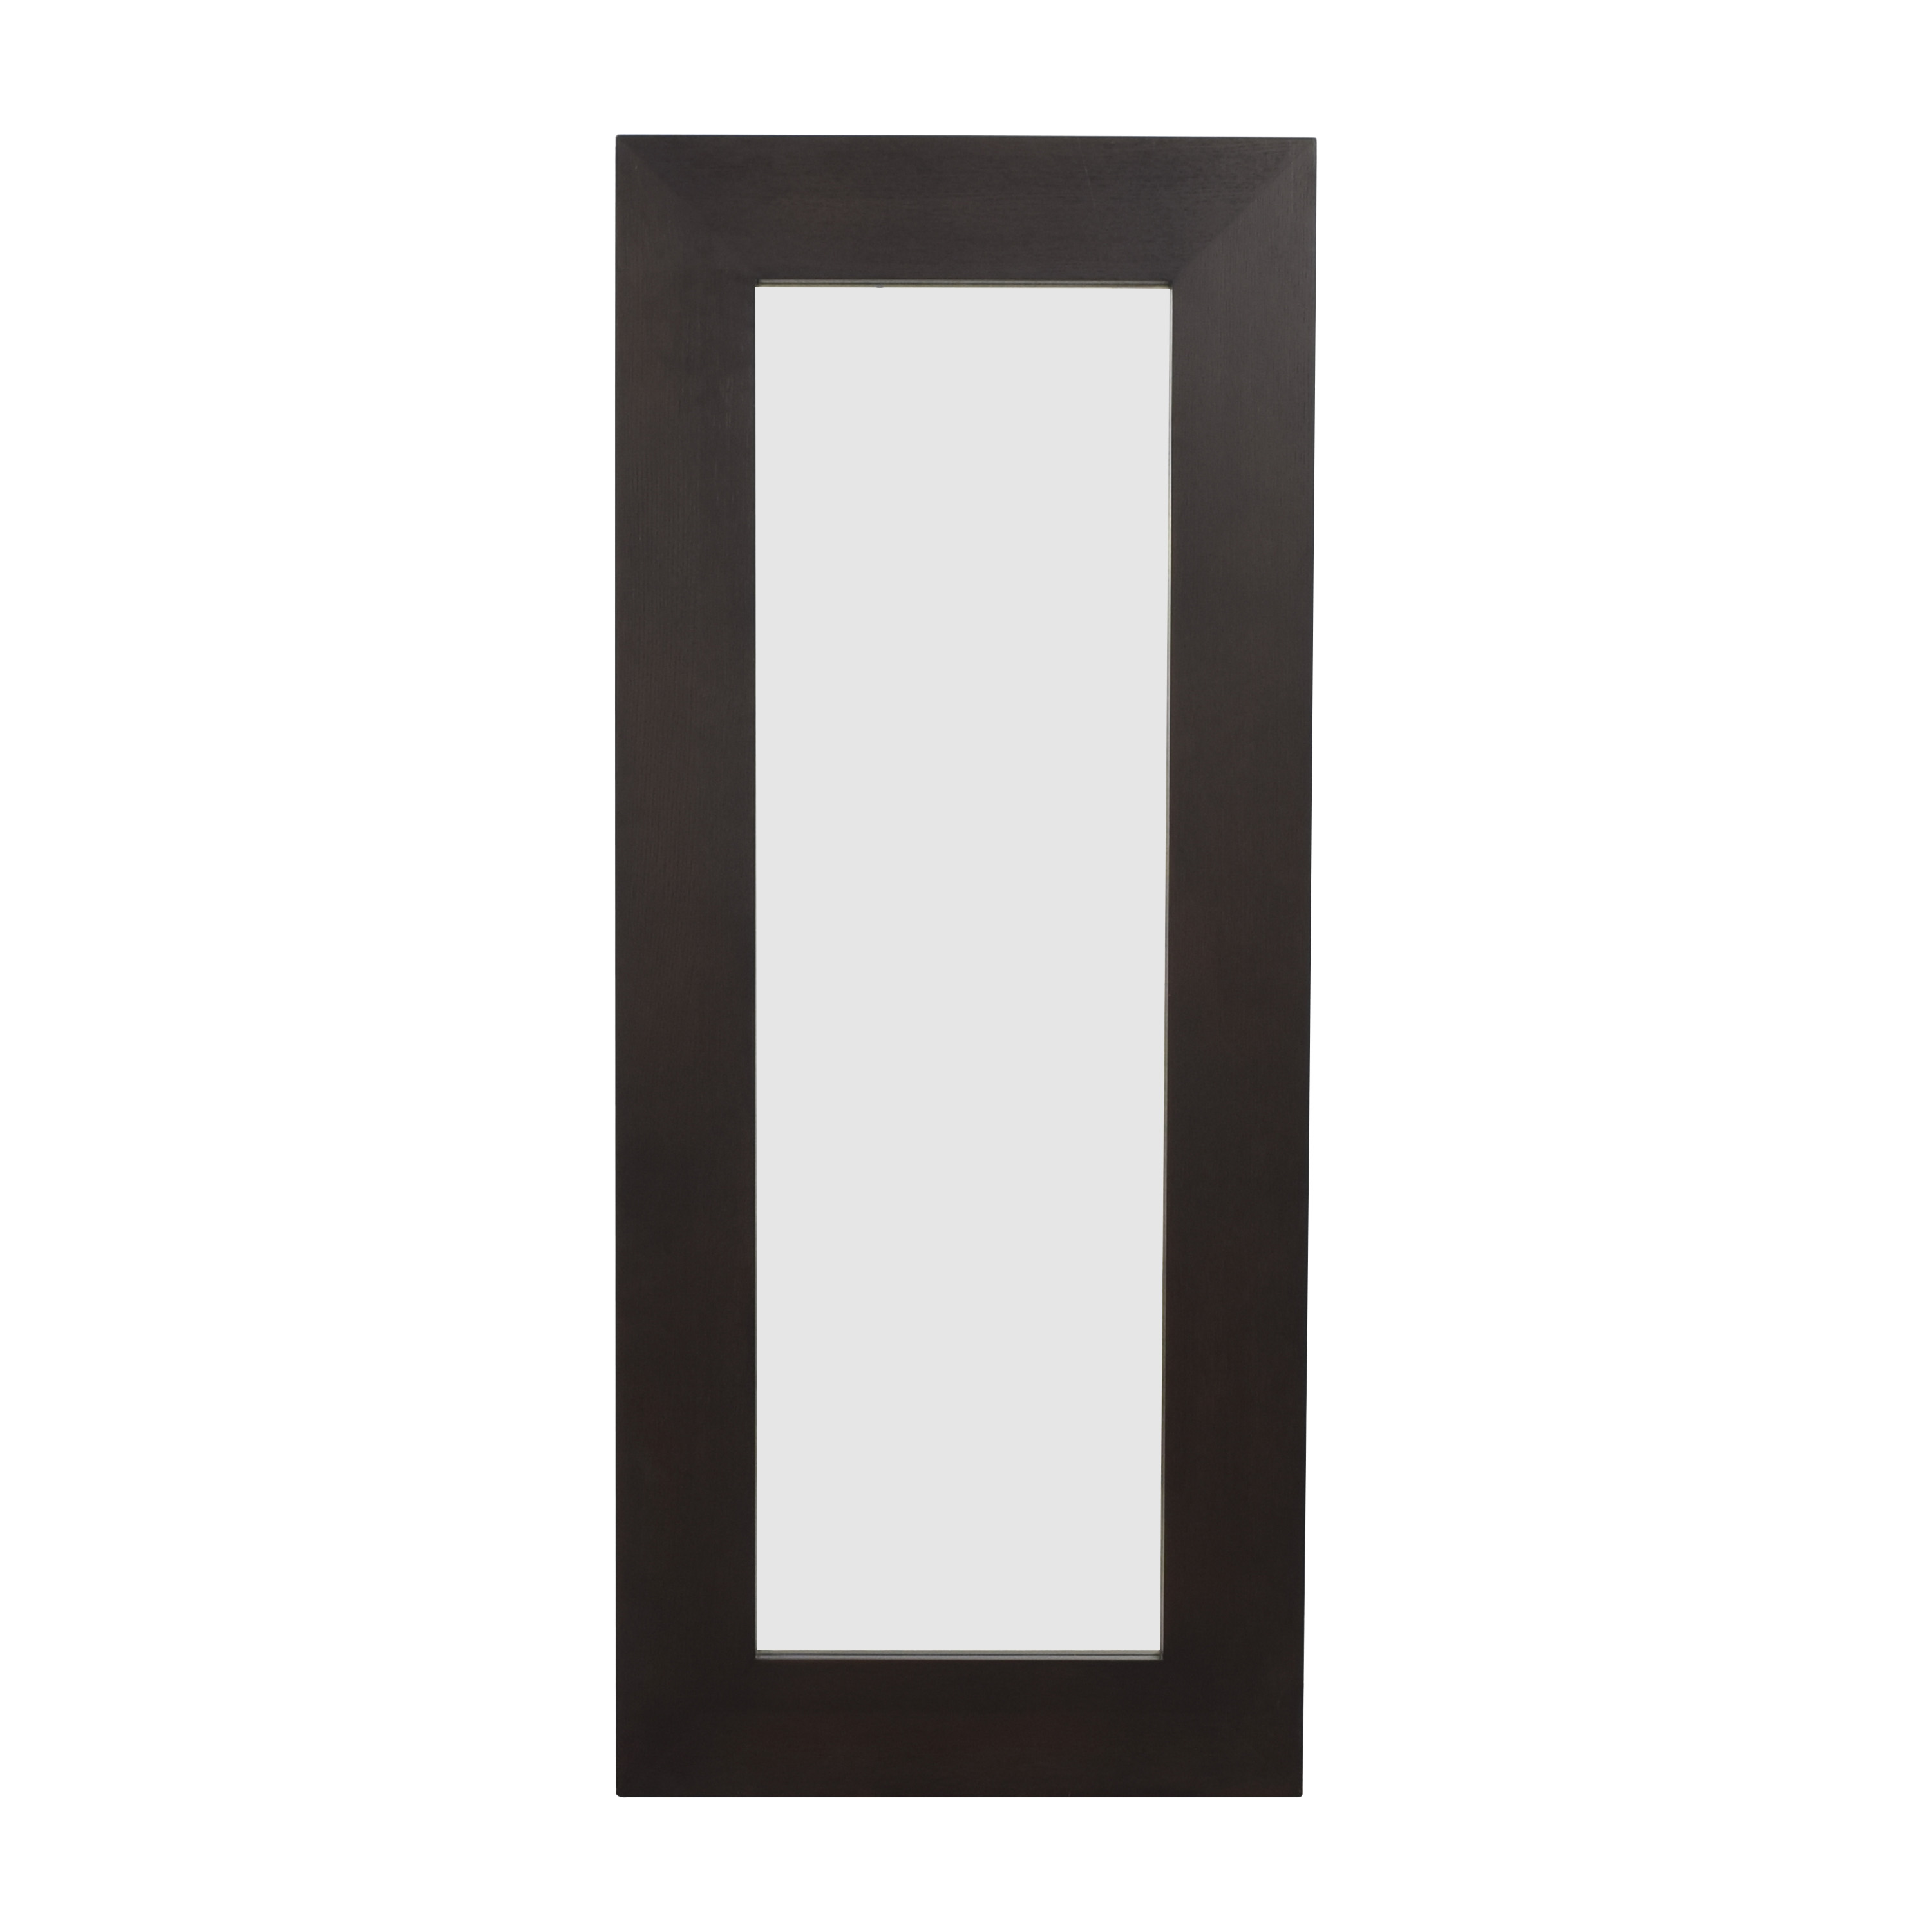 West Elm West Elm Chunky Floor Mirror price